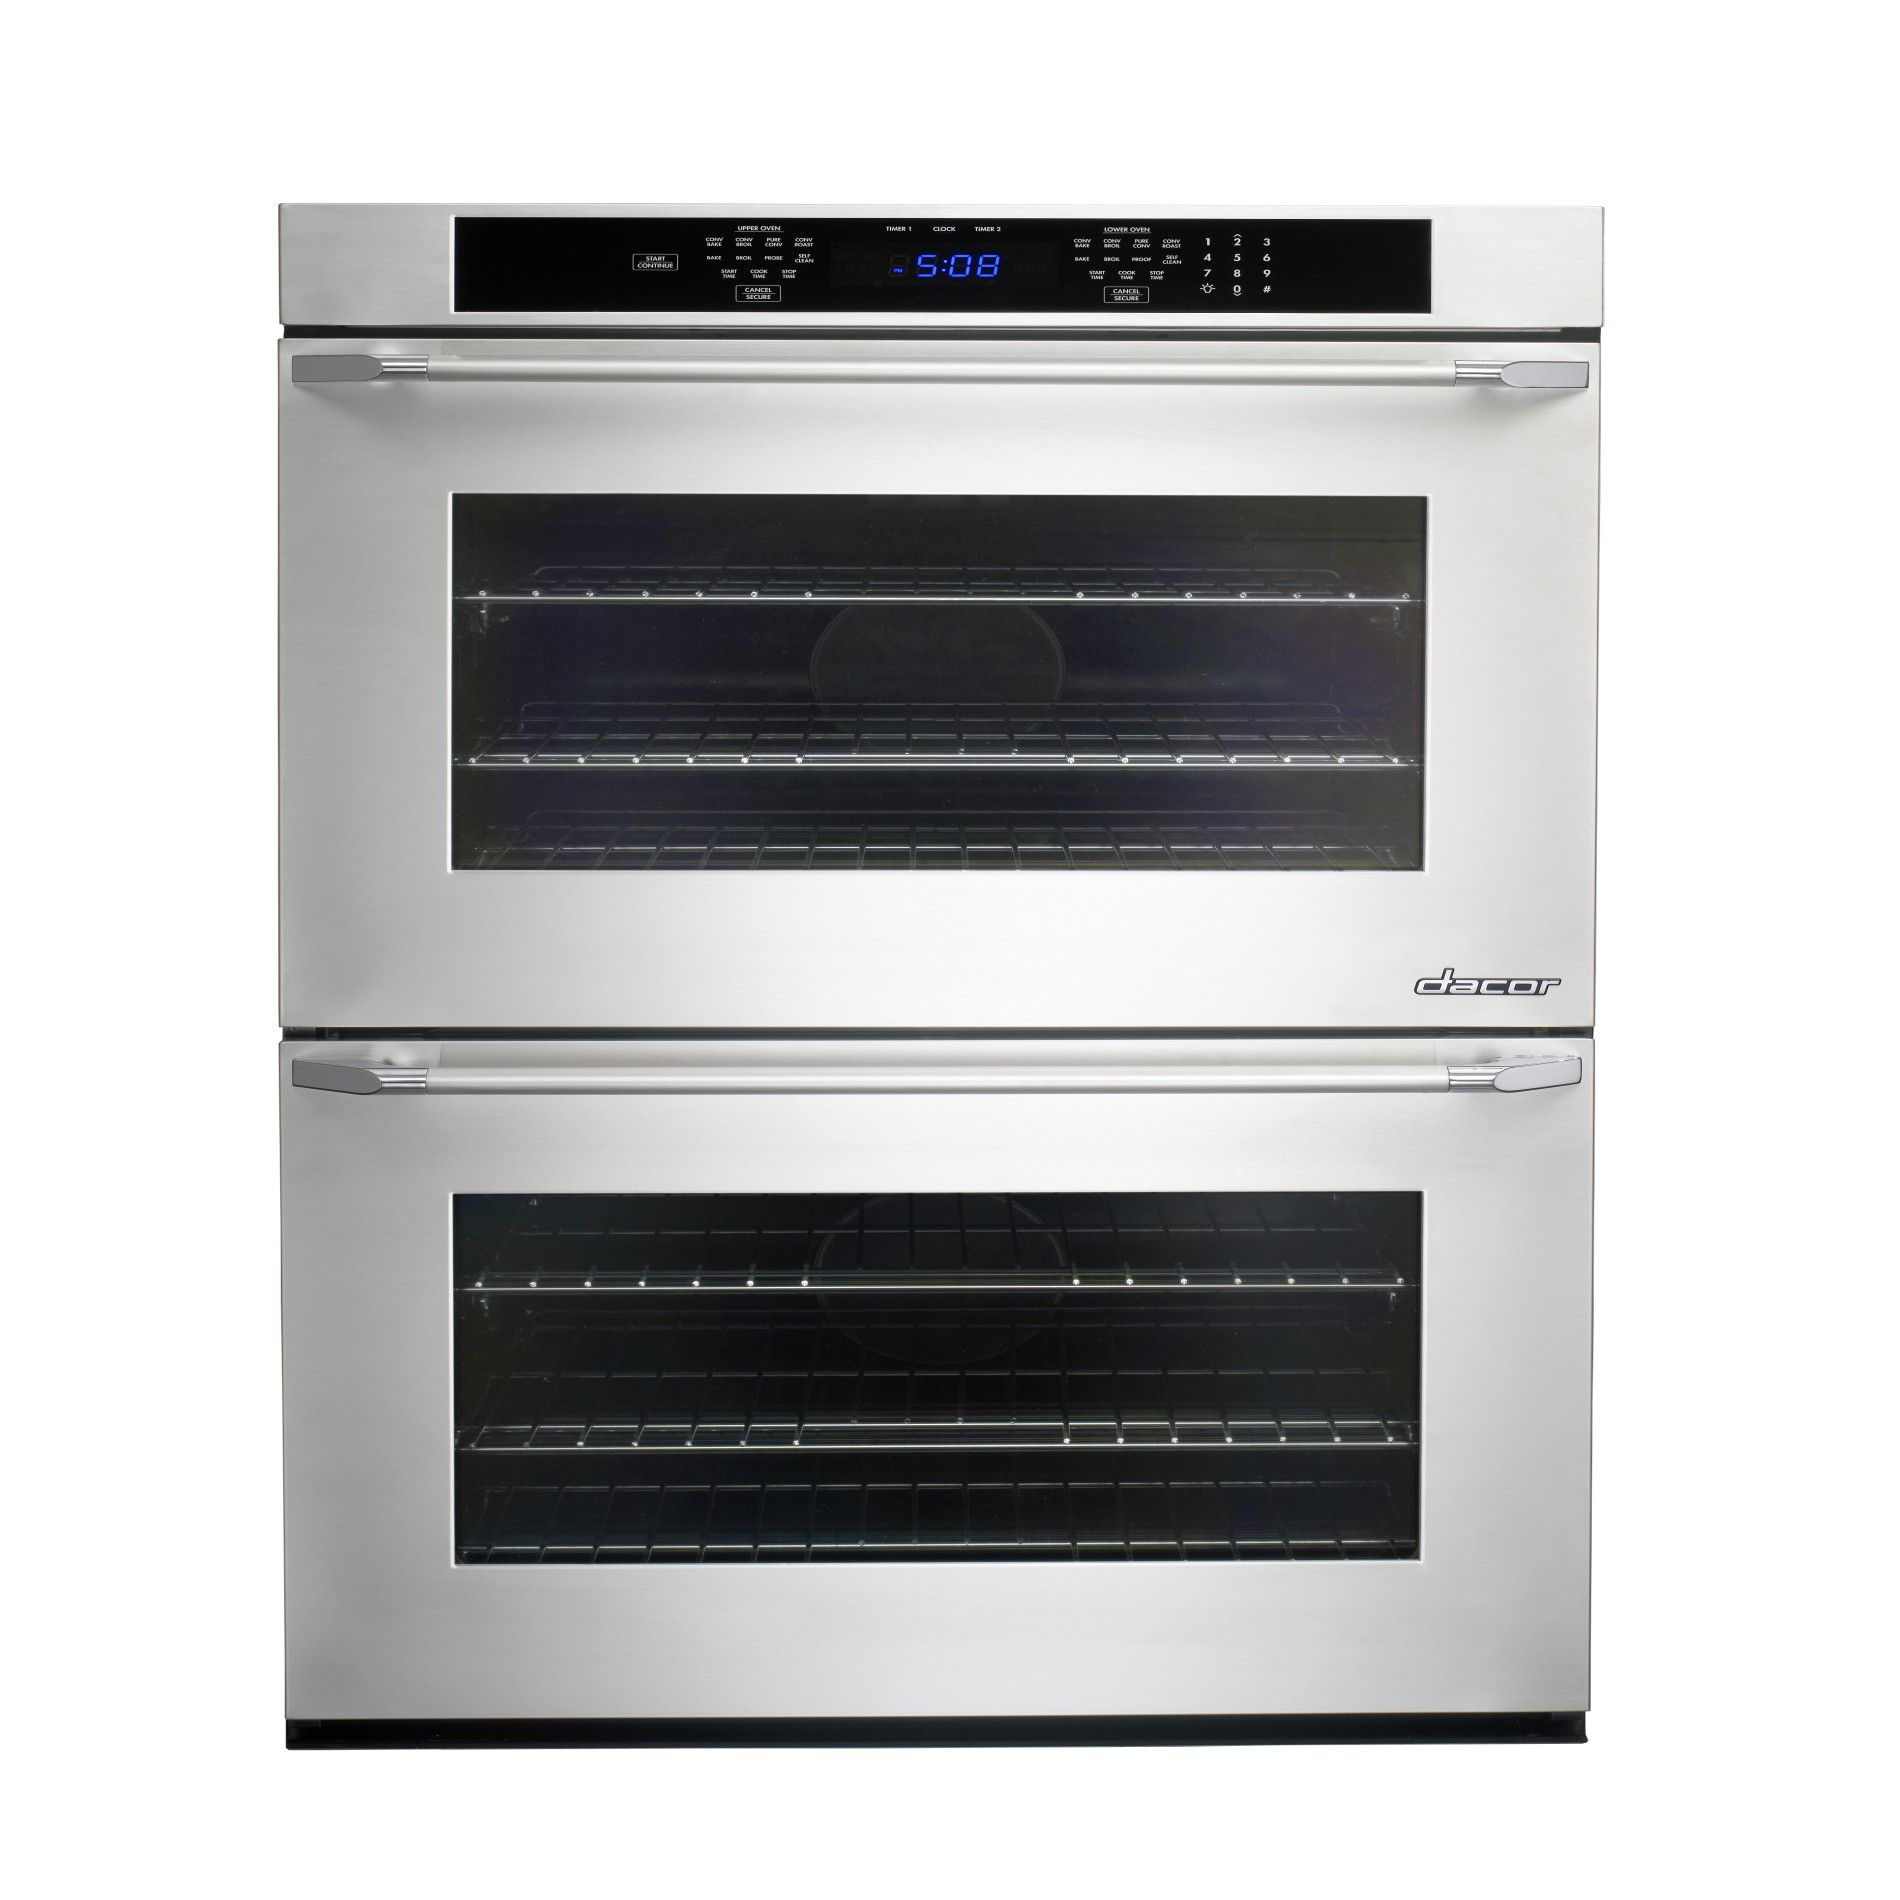 hight resolution of dacor electric double wall oven 30 in ro230s sears dacor cooktop parts diagrams dacor wall oven wiring diagram